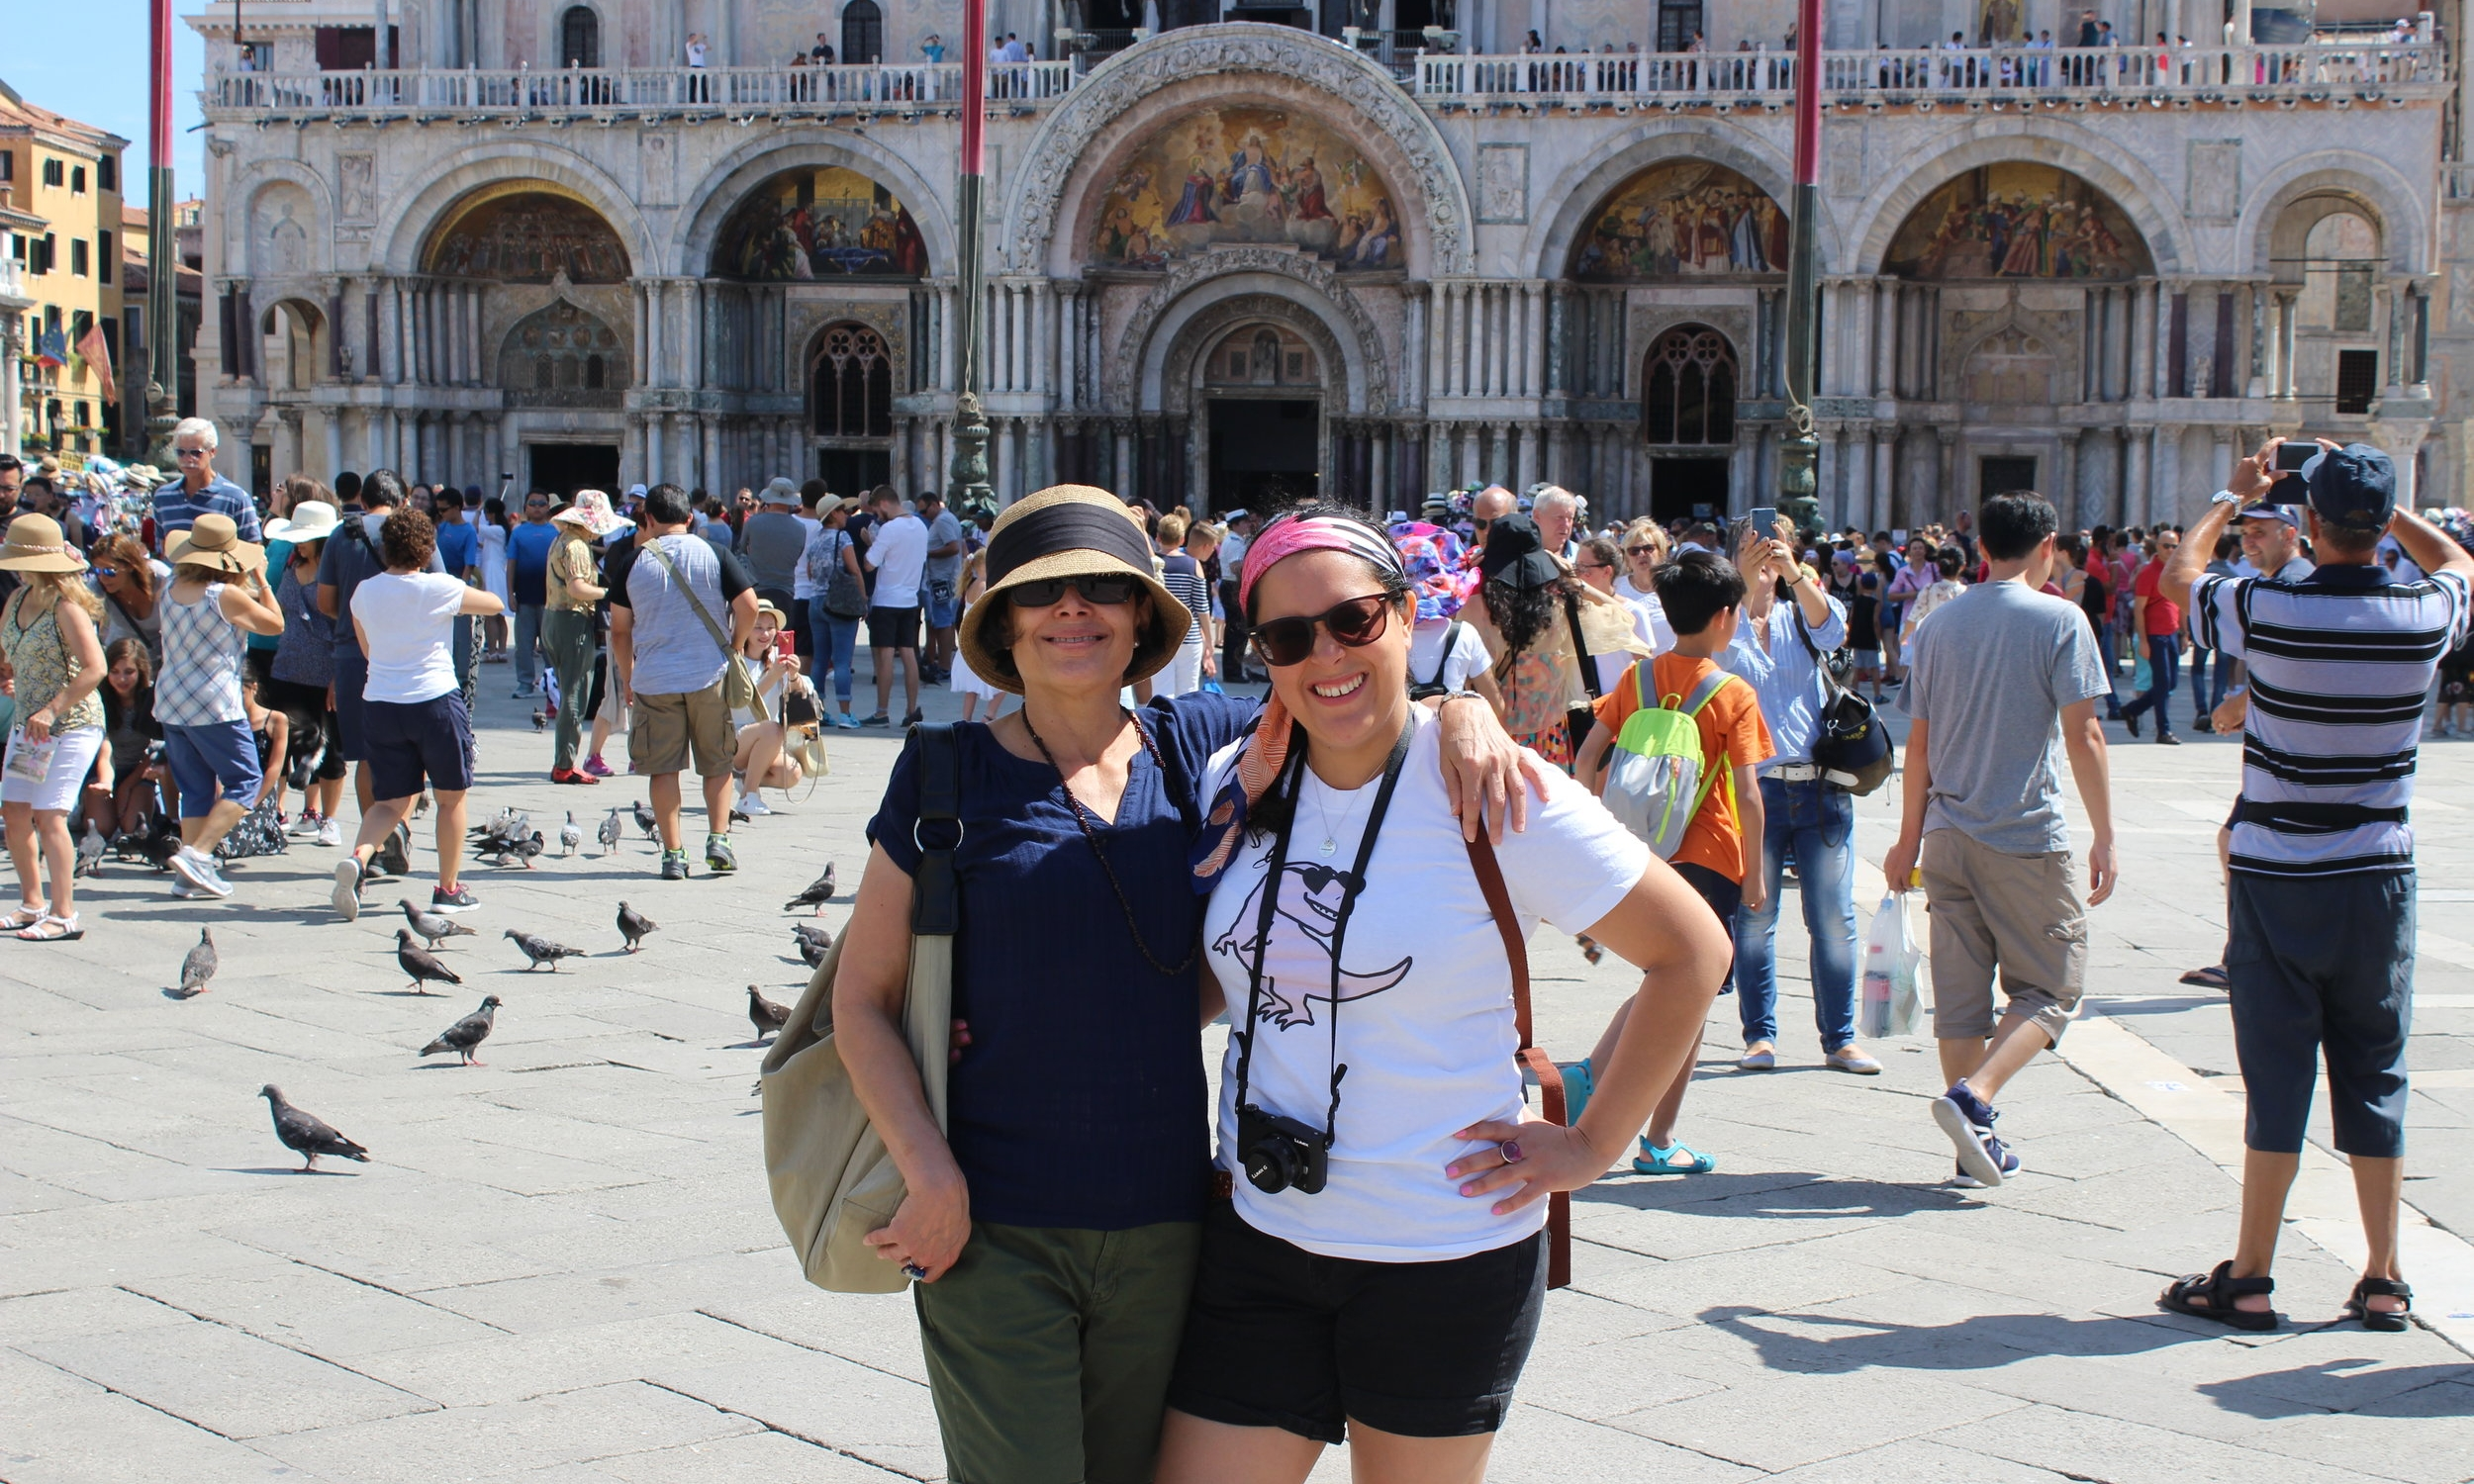 Mother and daughter in St. Mark's Square